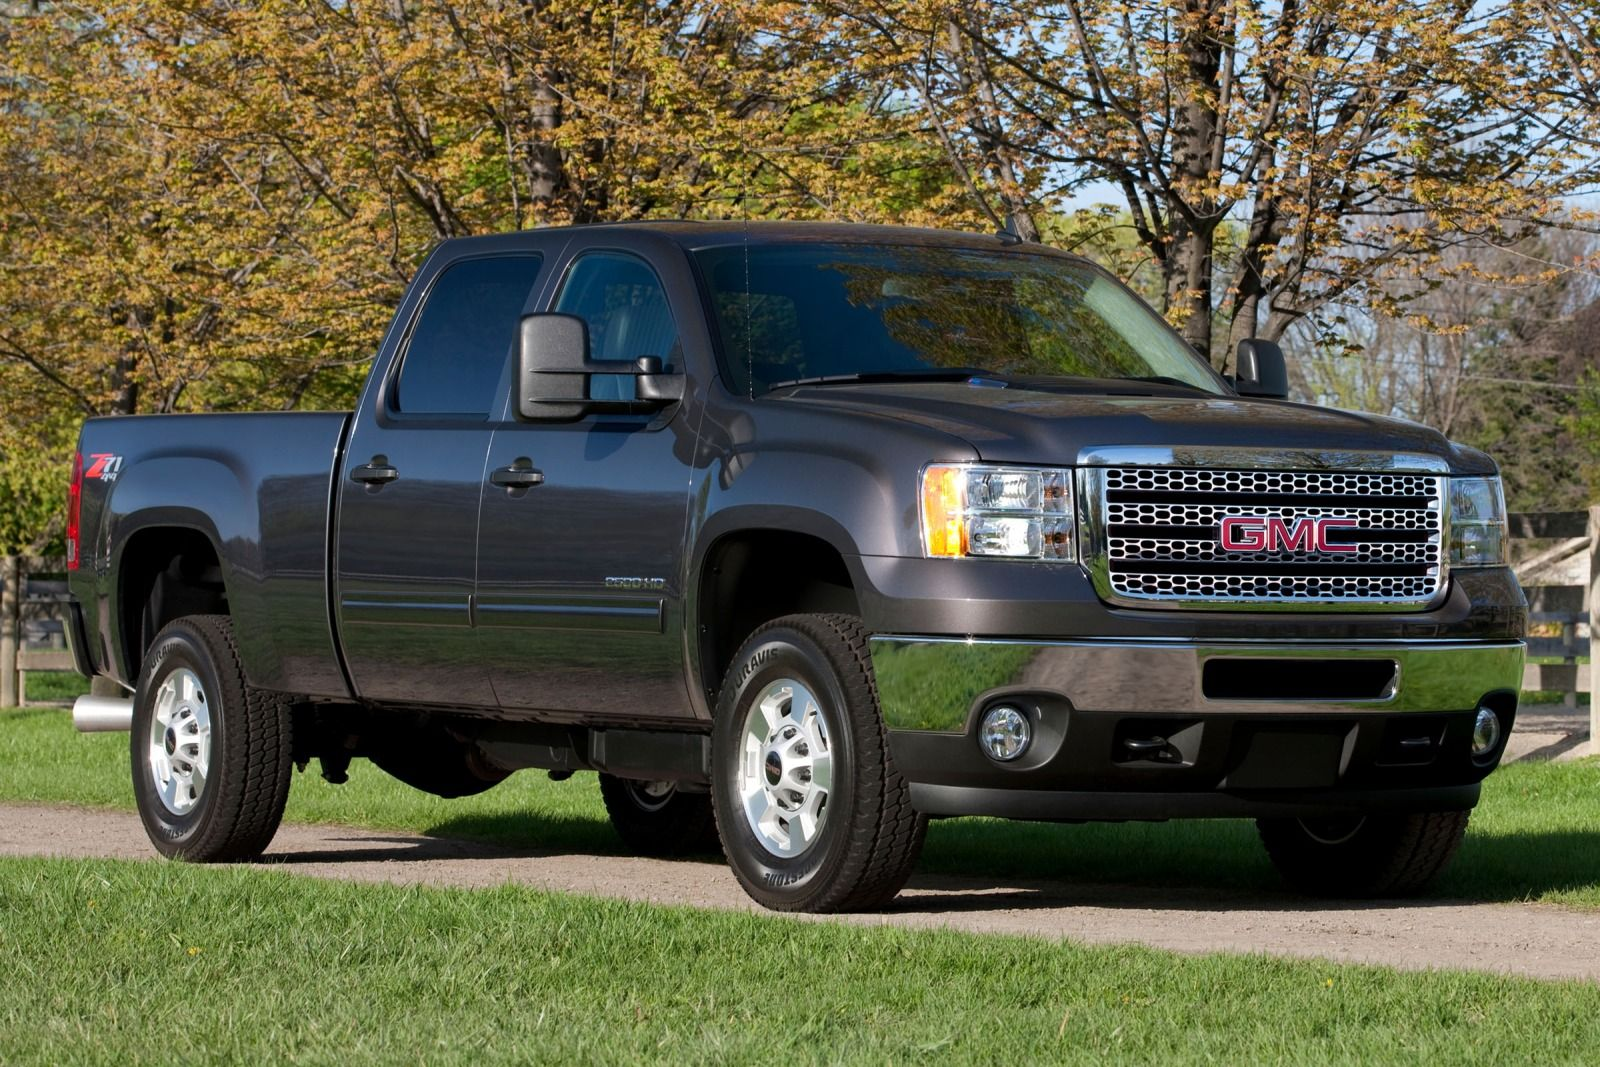 2013 GMC Sierra 3500hd #24